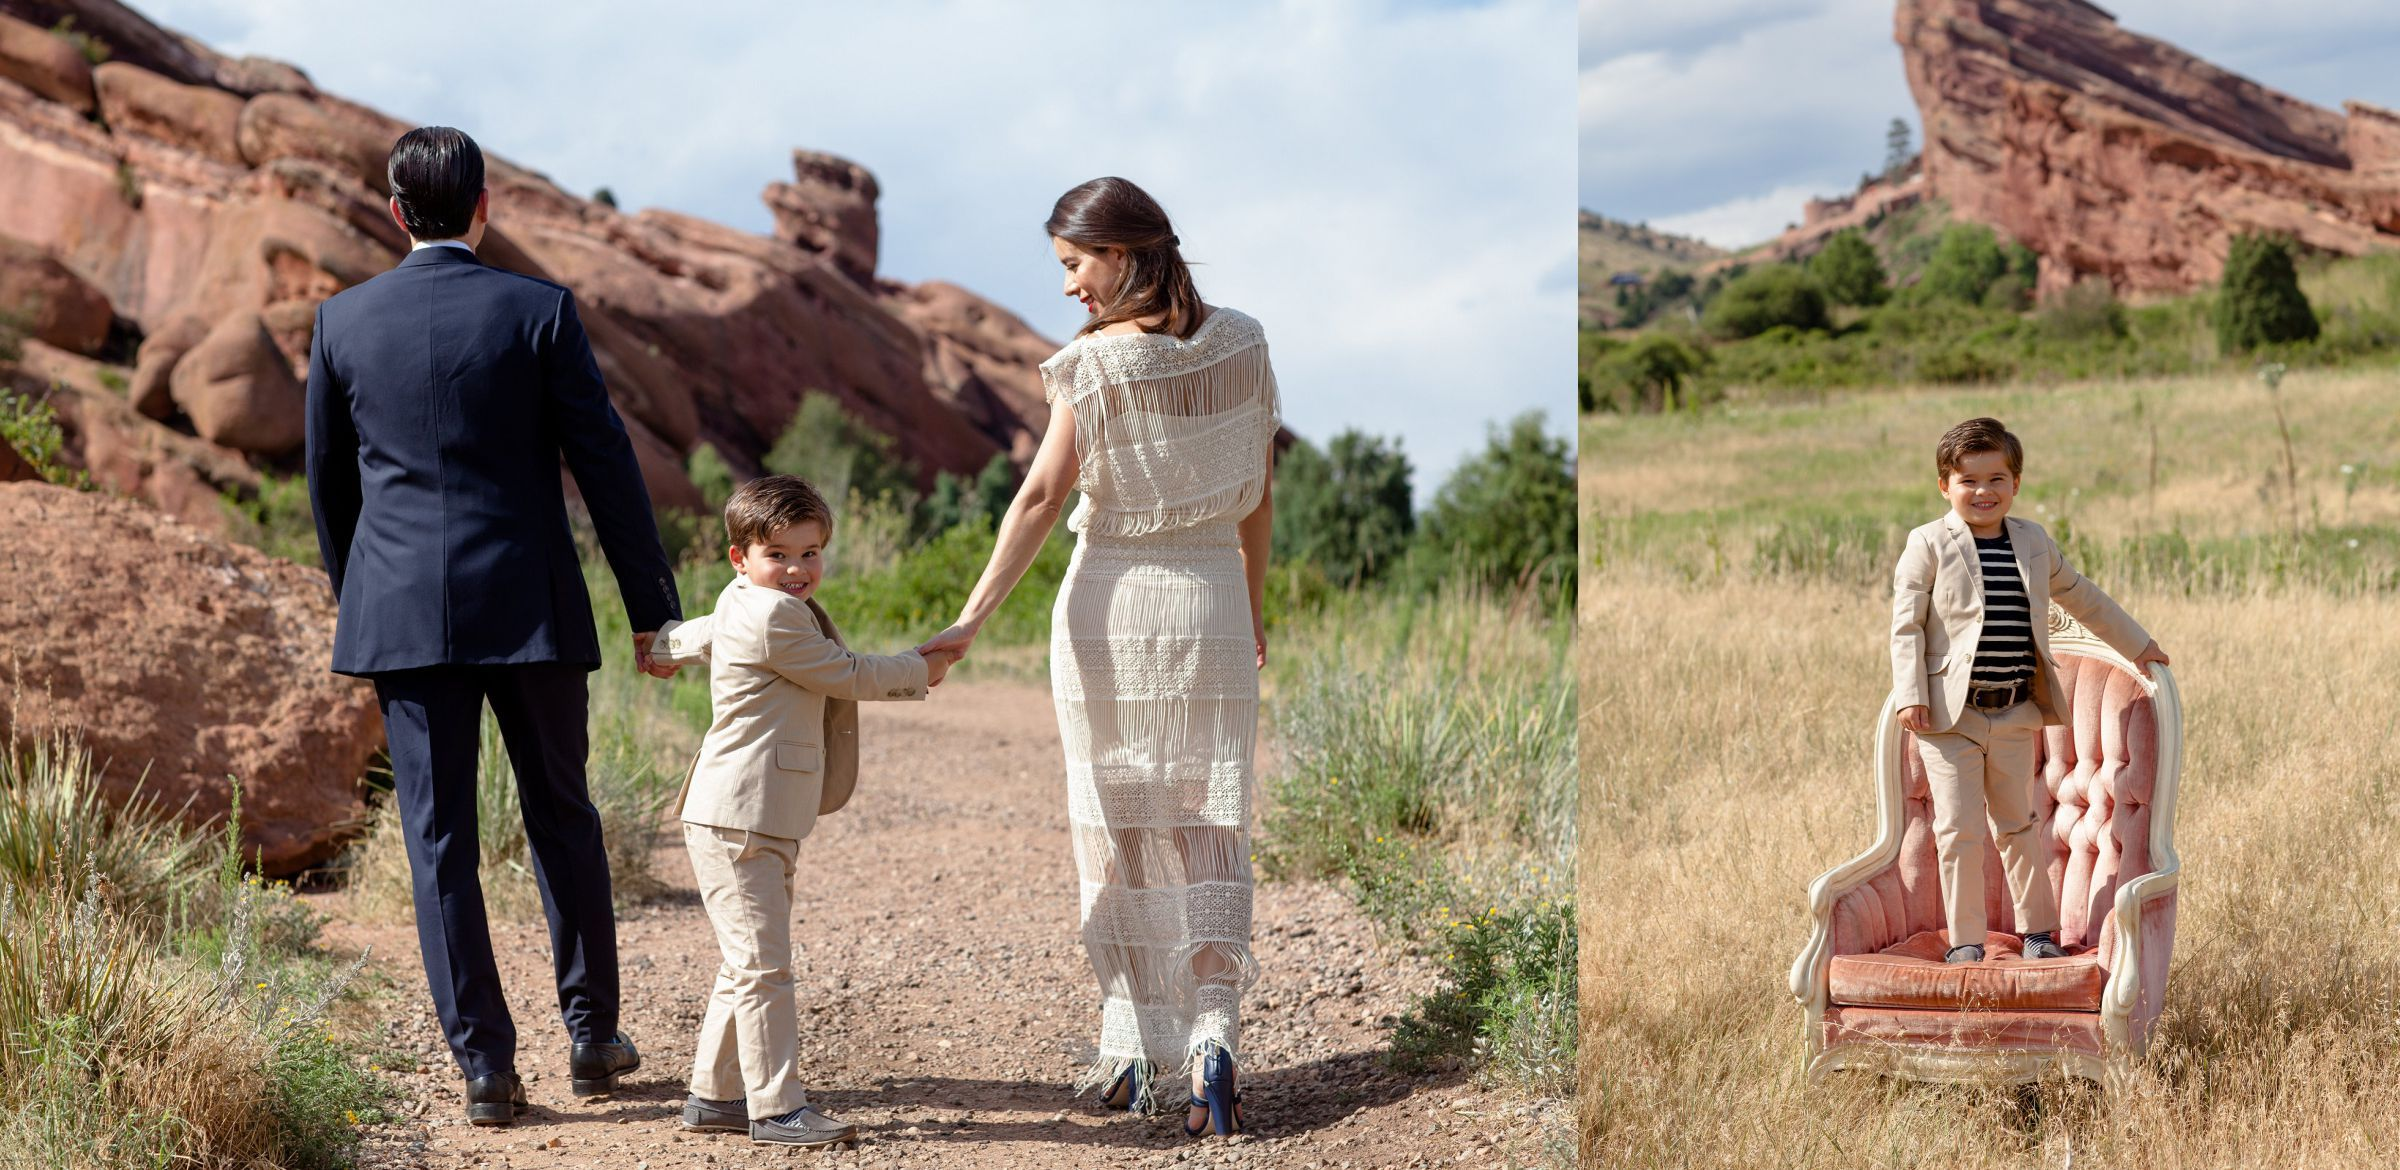 03-Denver Family Photography.jpg